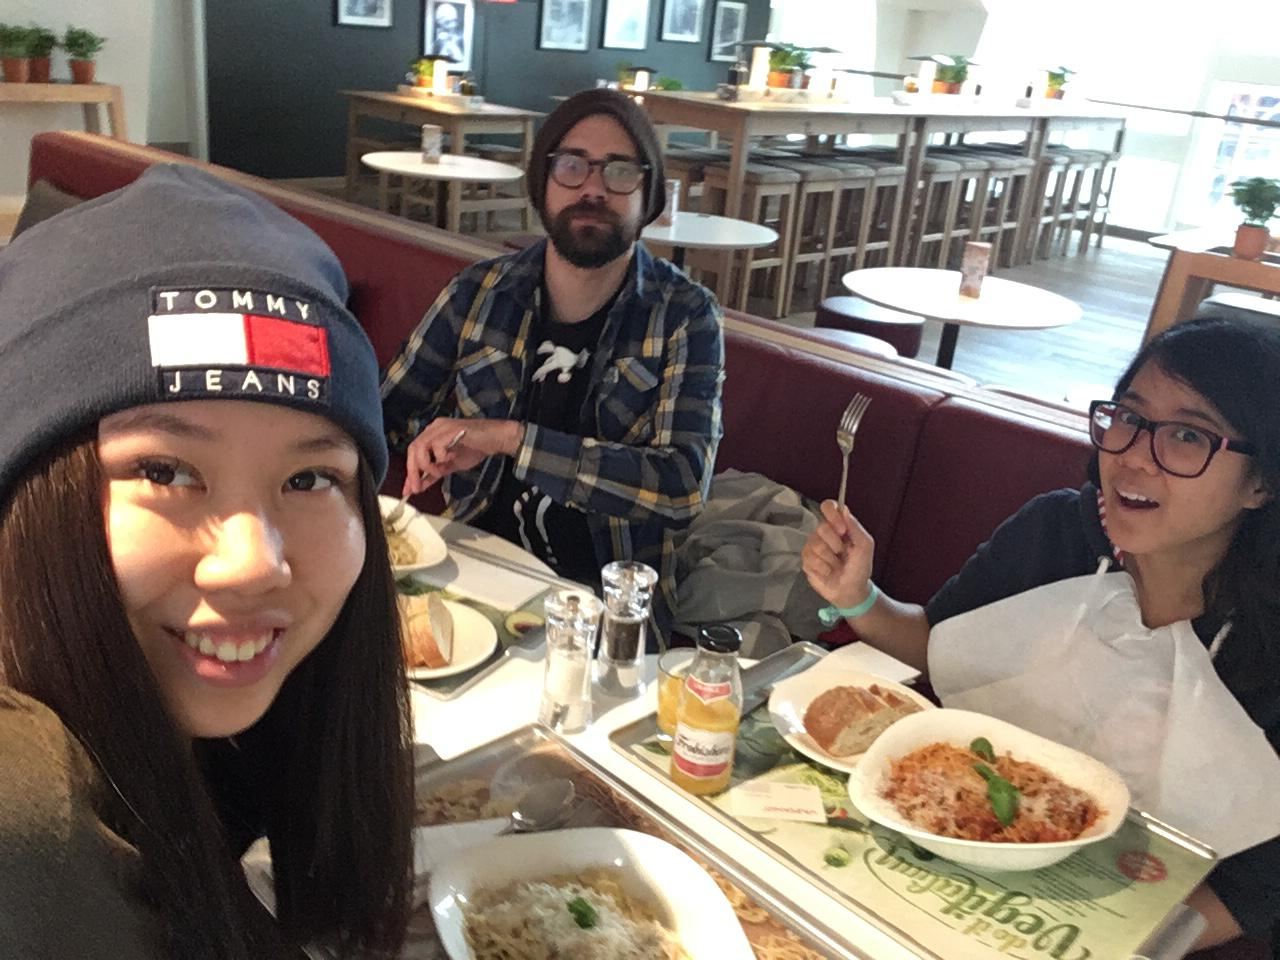 Lunch at Vapiano after a Japanese exam (I also have a hangover) with two of my classmates (Natalie and Richard) who are in my linguistics and Japanese classes.